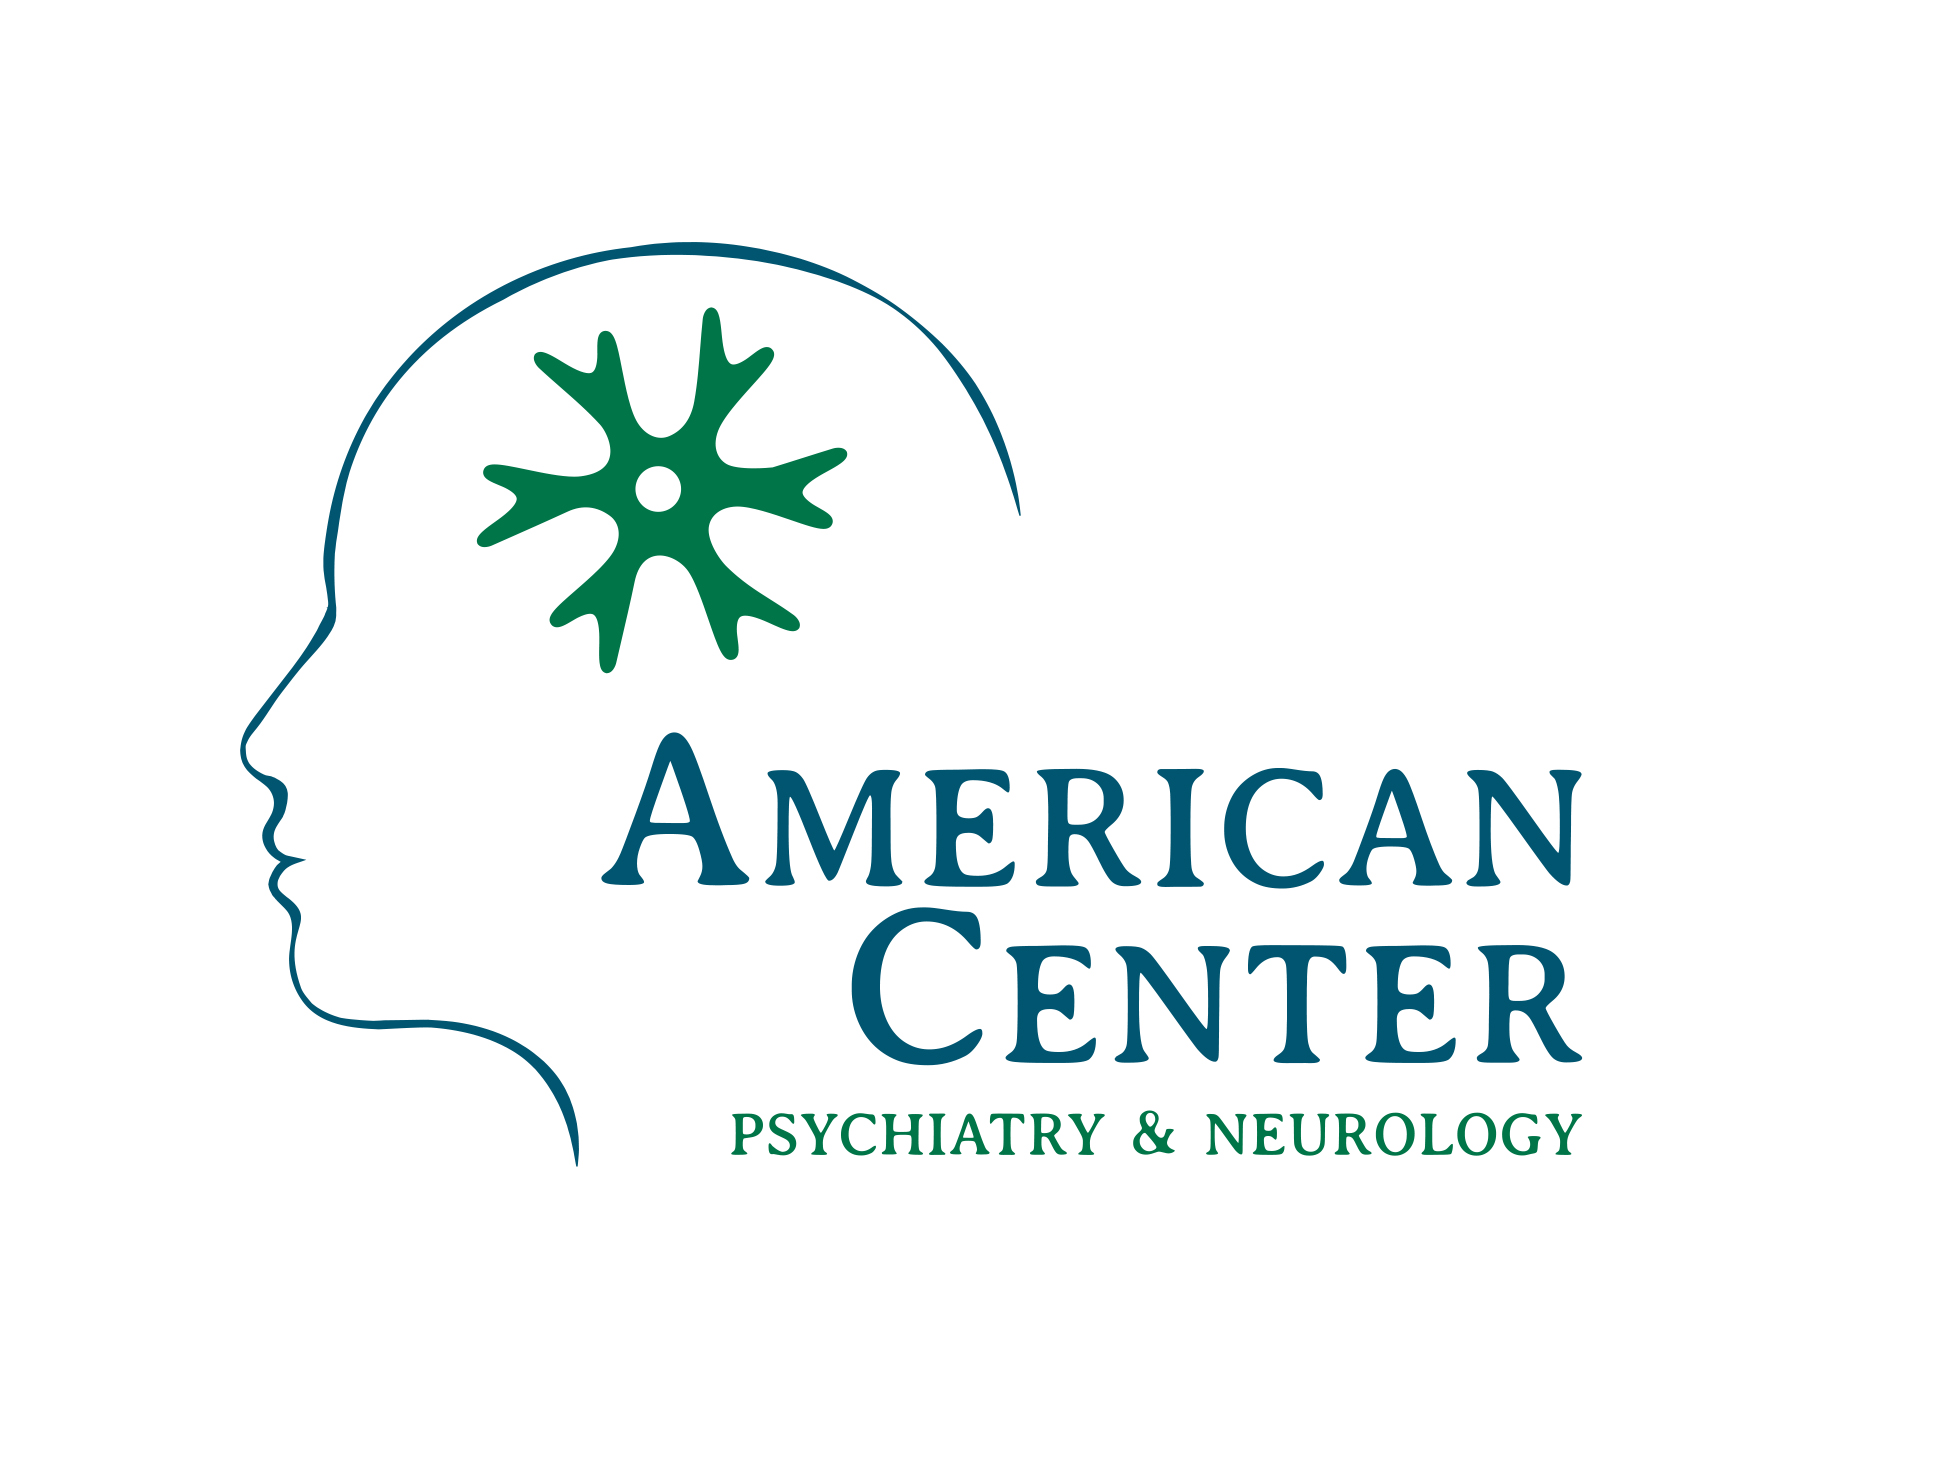 American Center for Psychiatry and Neurology